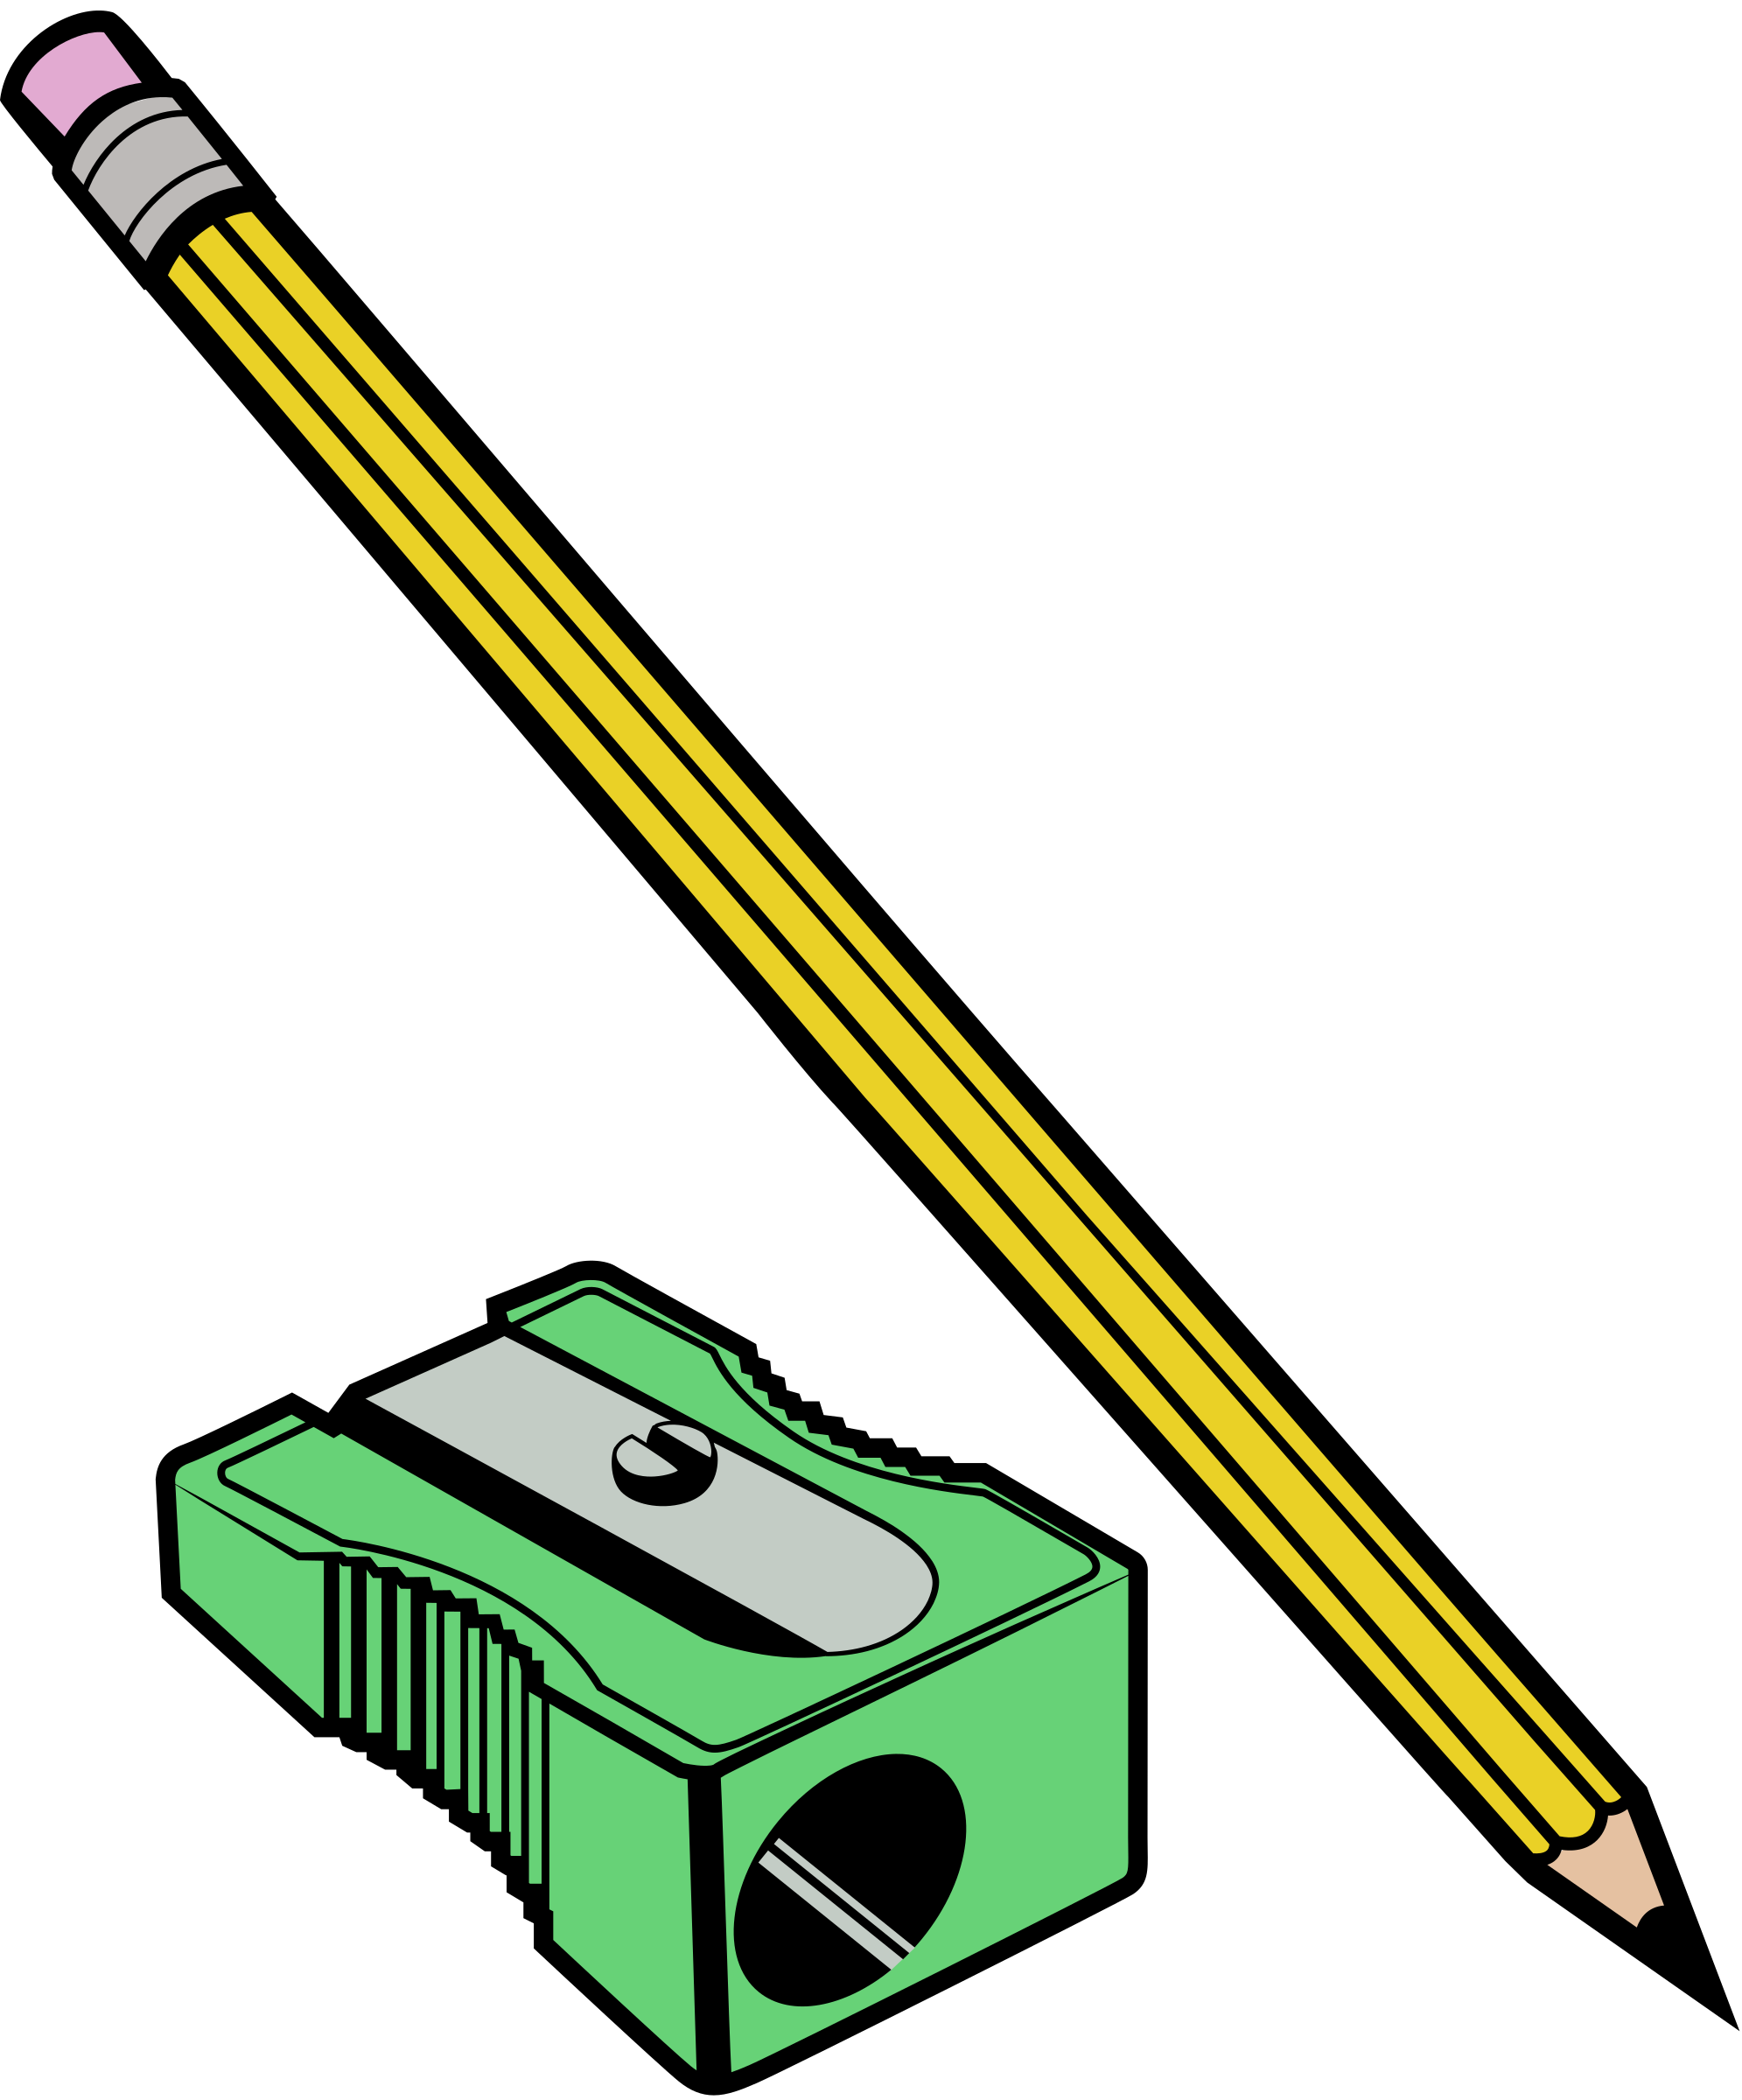 Pencil and Sharpener - Colour by j4p4n